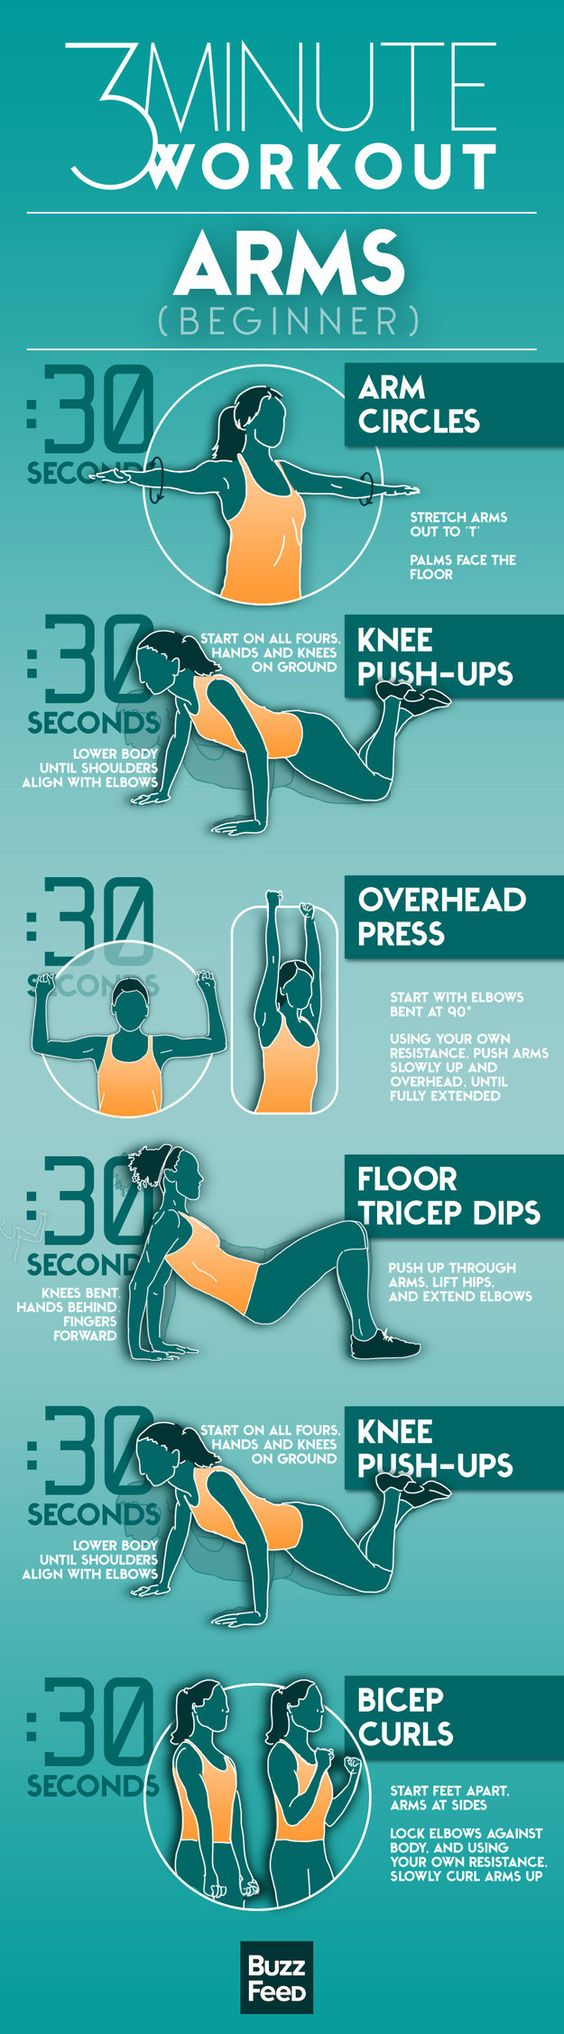 Here's How To Work Out Your Arms In Three Minutes Flat - great when you are sitting at a desk all day!